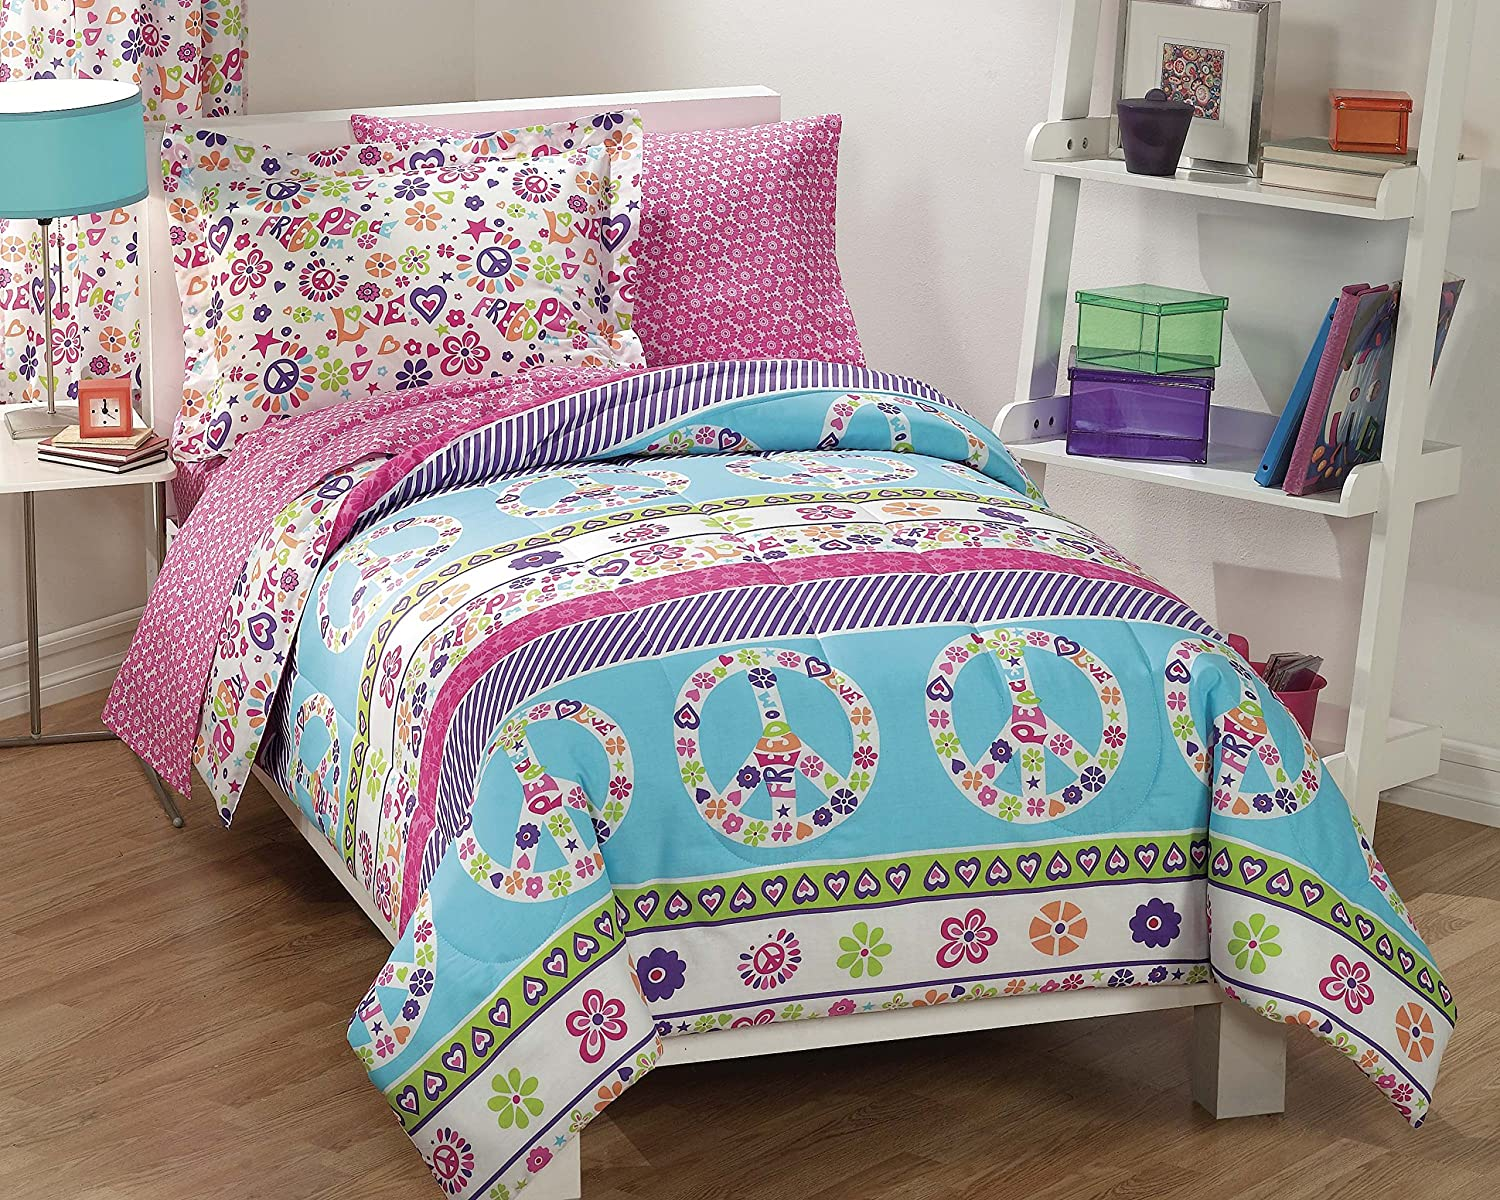 Best Cheap Childrens And Teen Twin Boy Or Girl Bedding Set Collection -5640